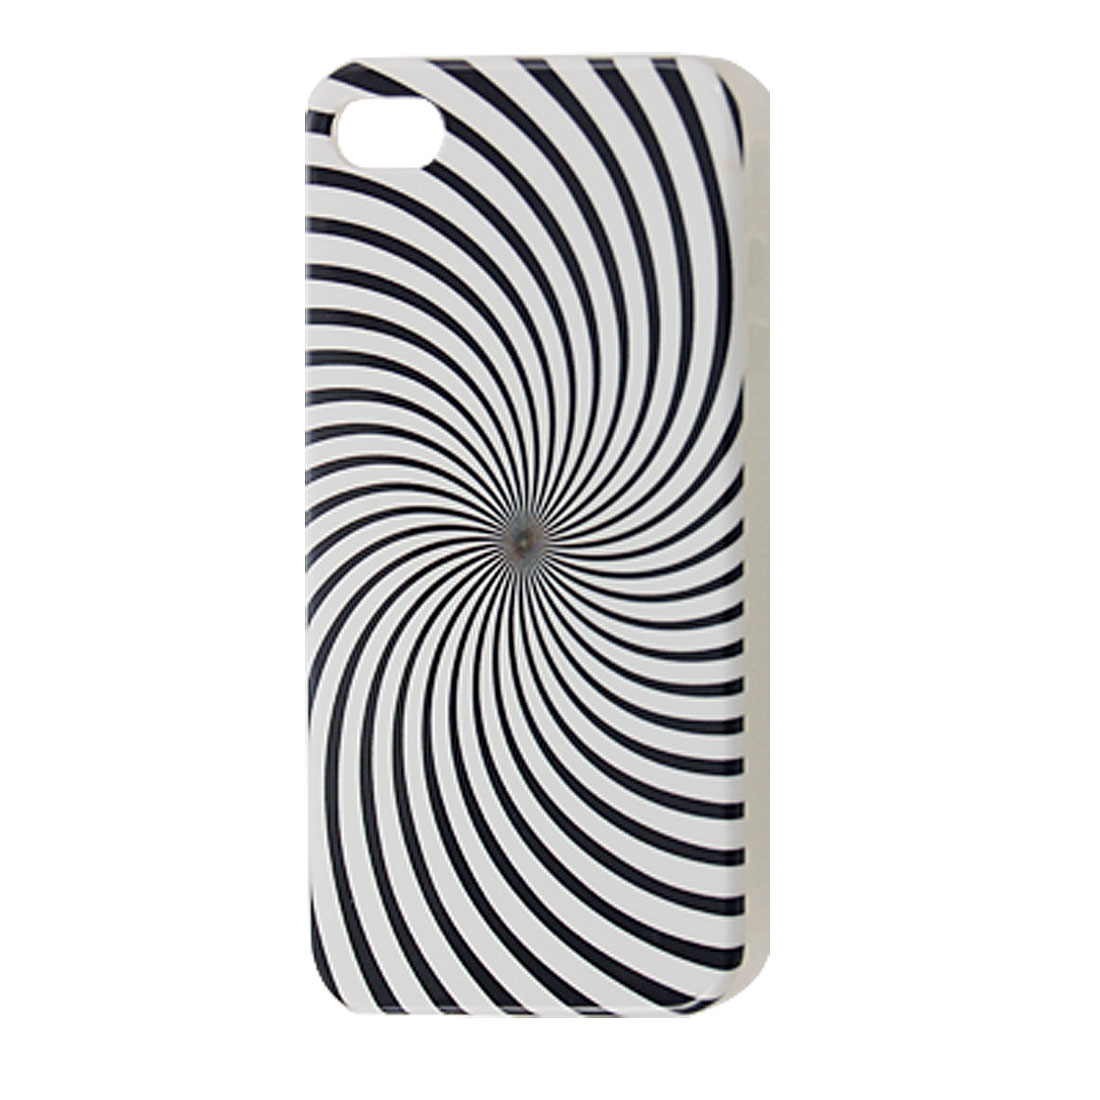 Plastic Black White IMD Spiral Case Cover for iPhone 4 4G